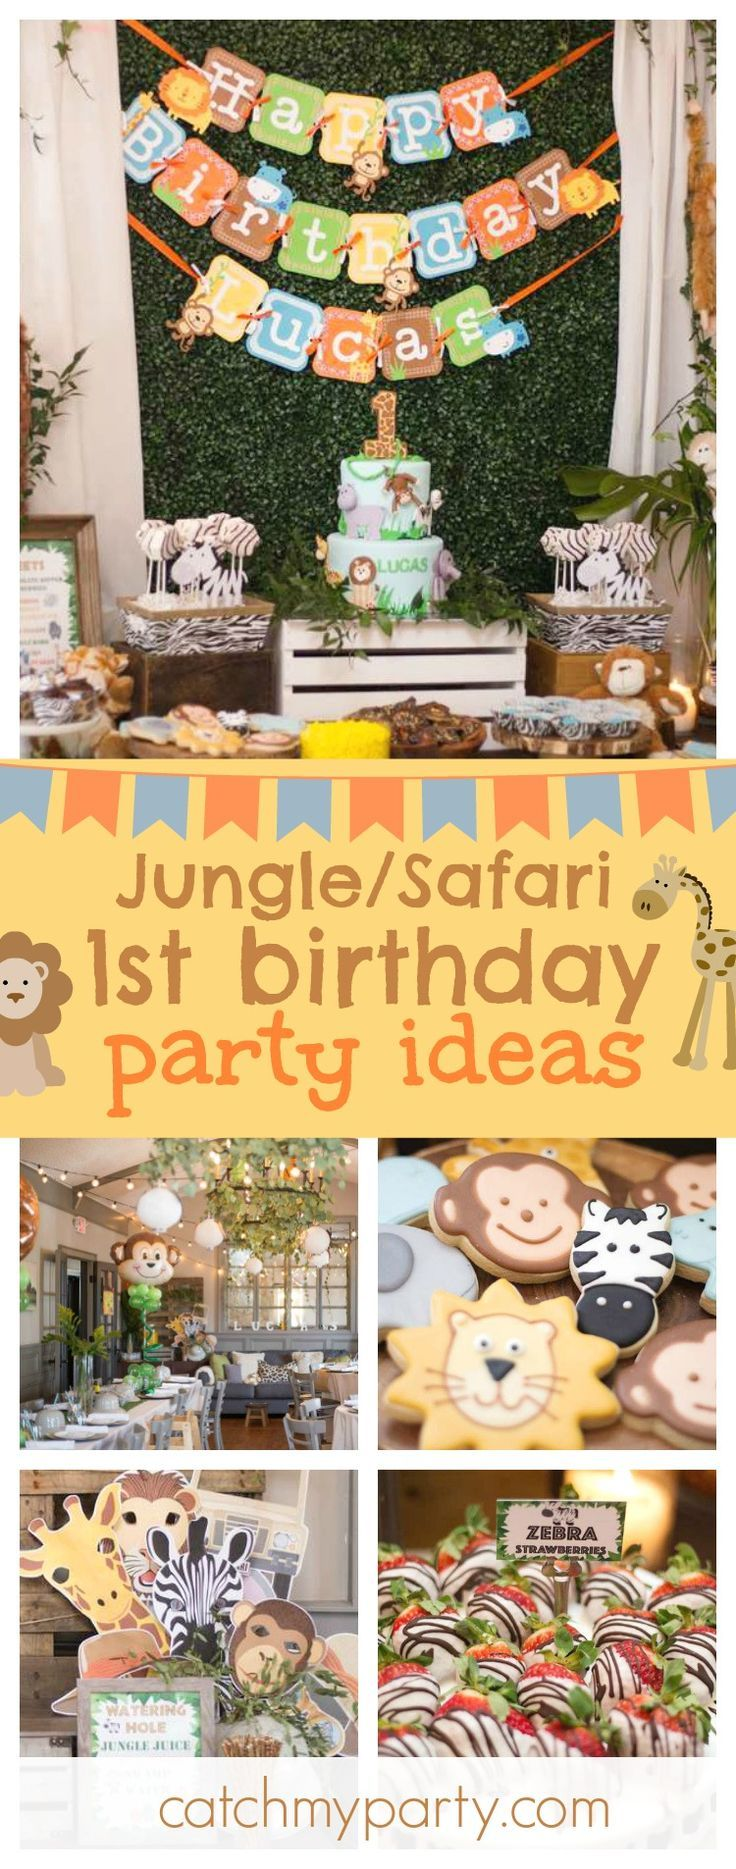 Check out this fun Jungle/Safari 1st Birthday party! The jungle inspired decor is so cute! Love the animal balloons!! See more party ideas and share yours at CatchMyParty.com